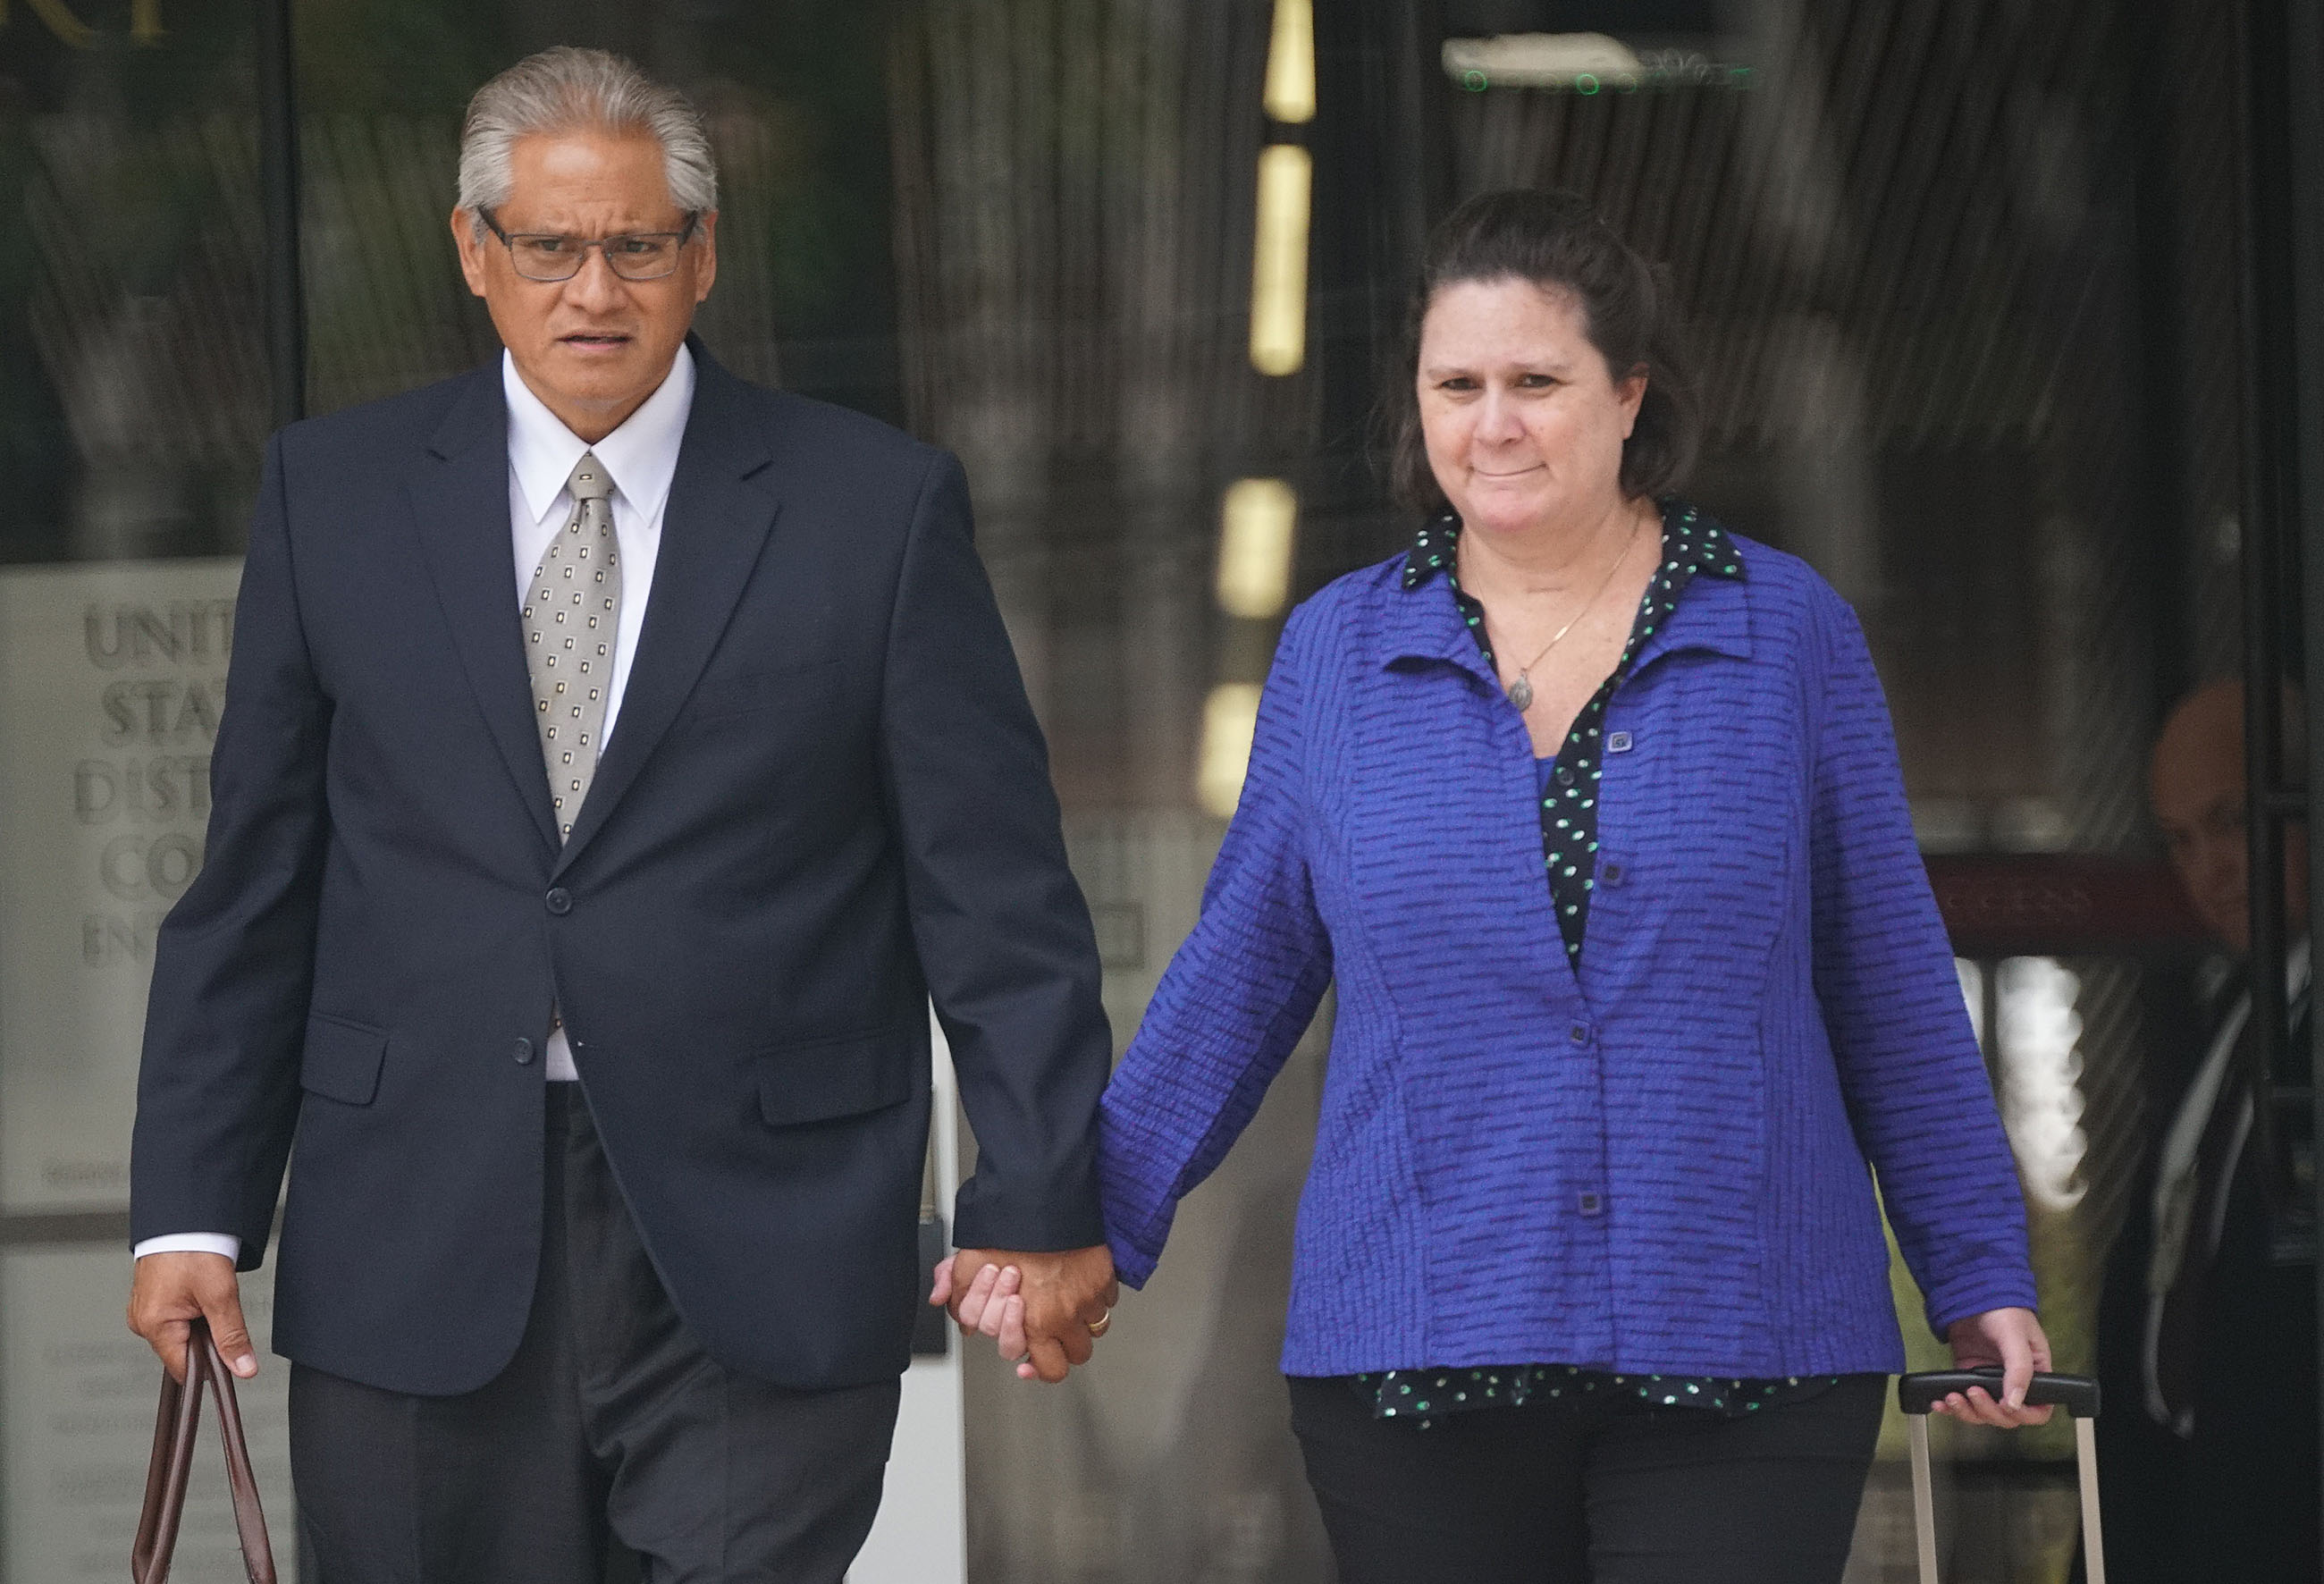 Former HPD Chief Louis Kealoha and Katherine Kealoha holding hands leaving District Court after jury deliberated.